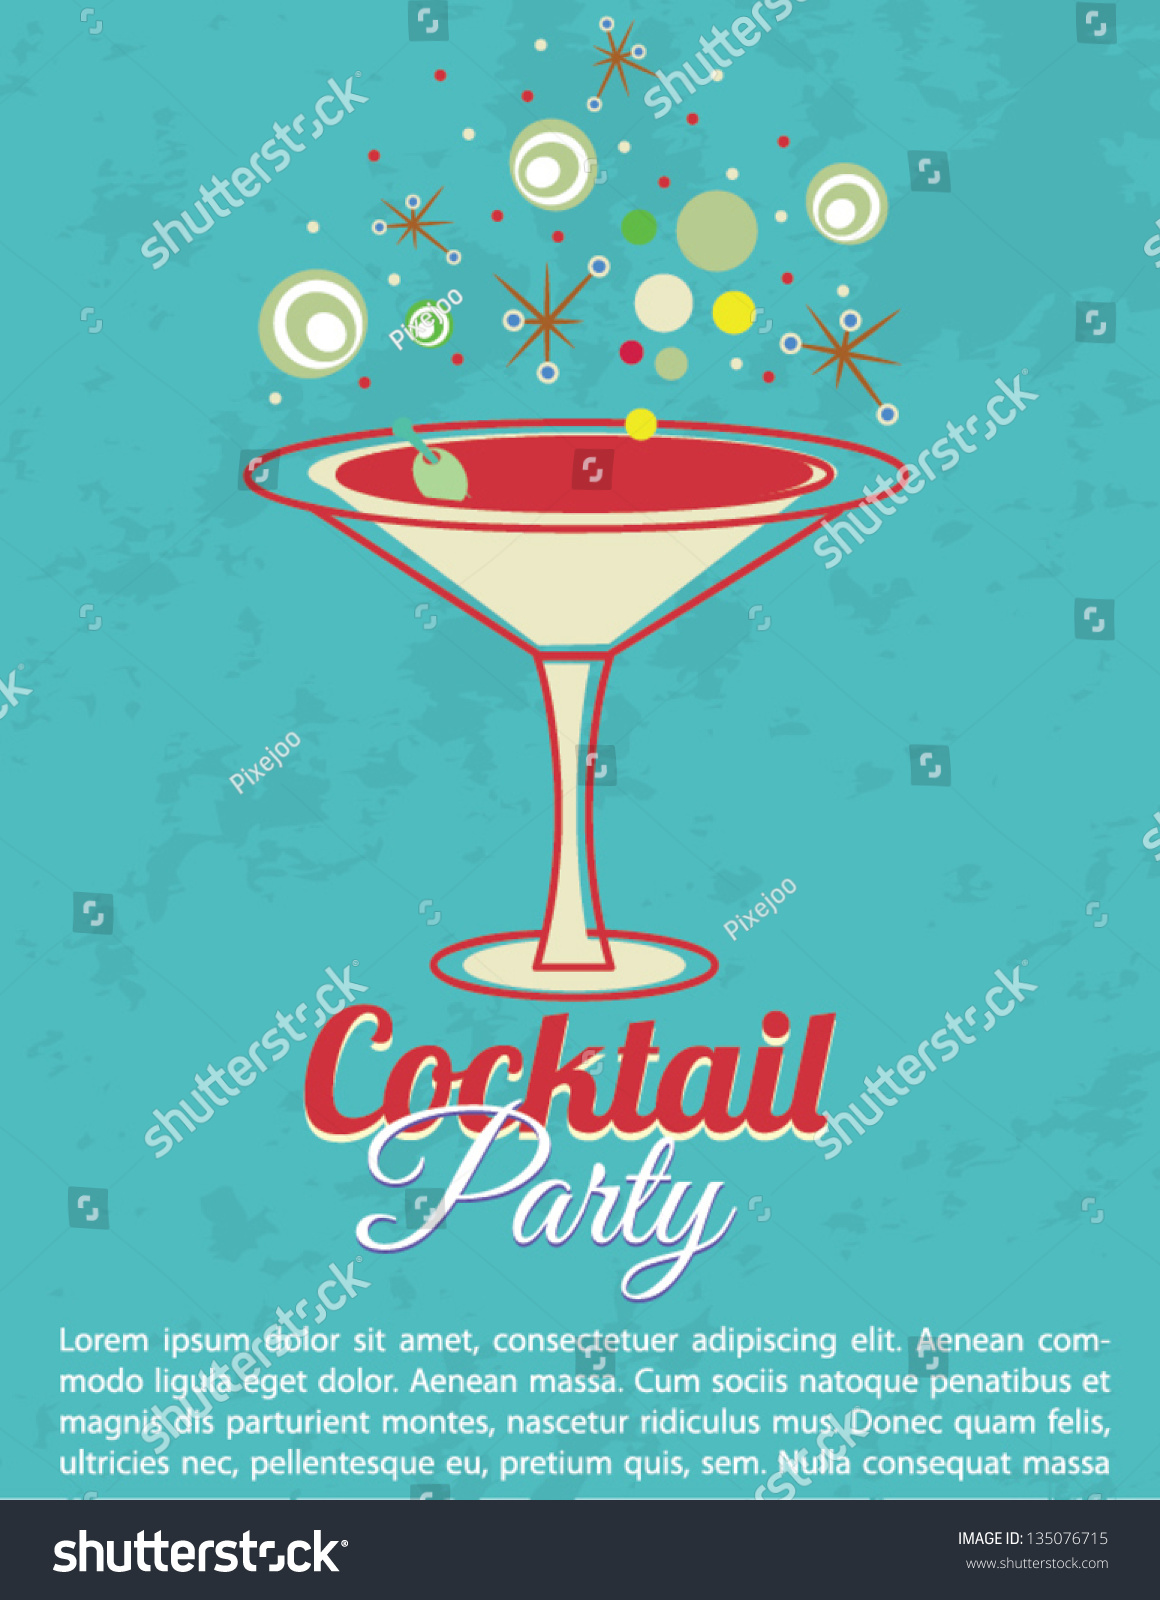 Vintage Cocktail Party Invitation Poster Vector 135076715 – Coctail Party Invitation